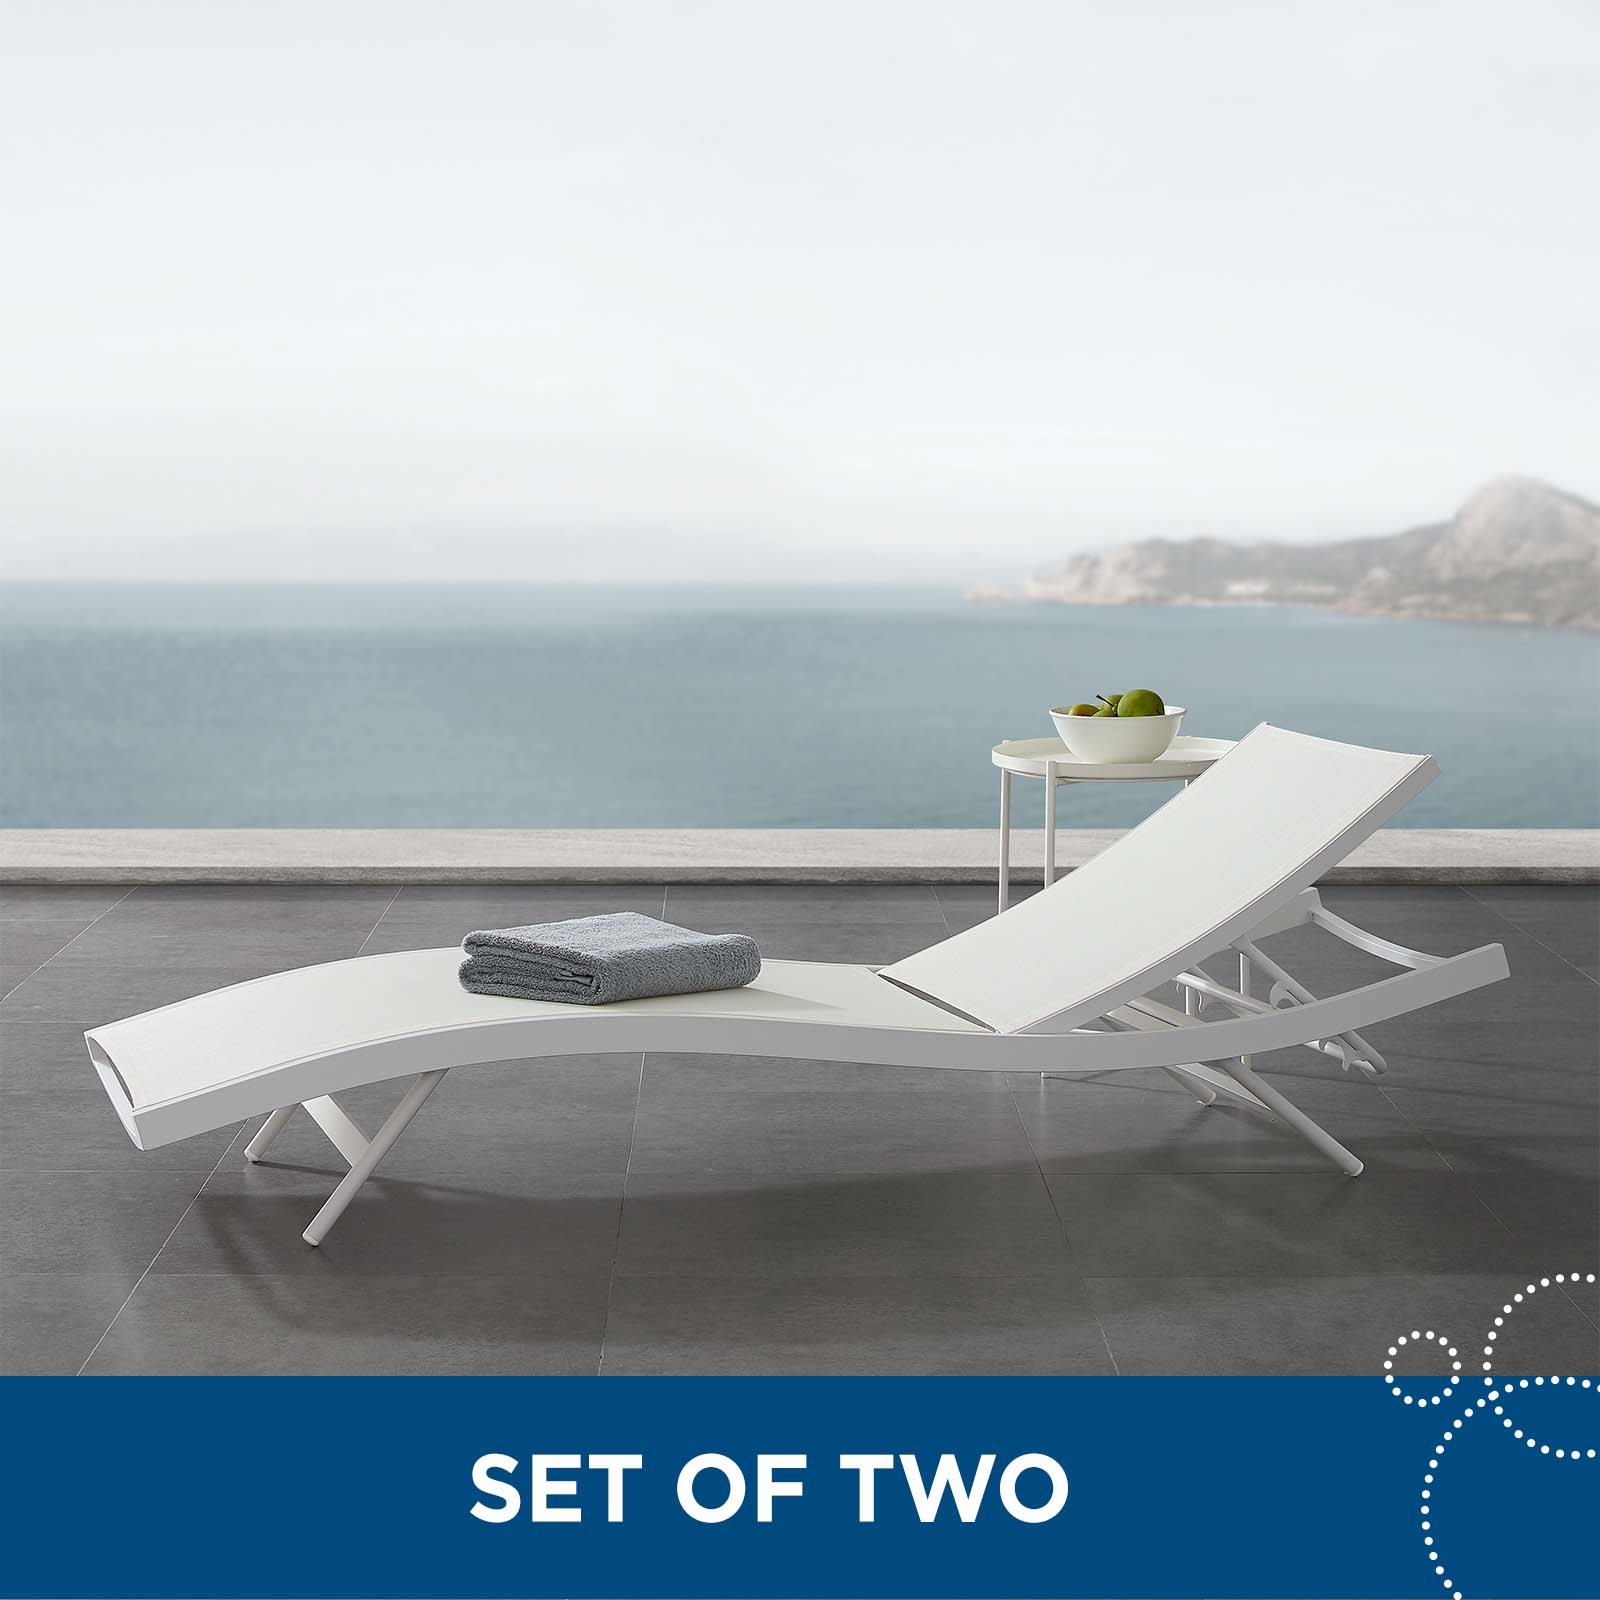 Glimpse Outdoor Patio Mesh Chaise Lounge Set of 2 in White White